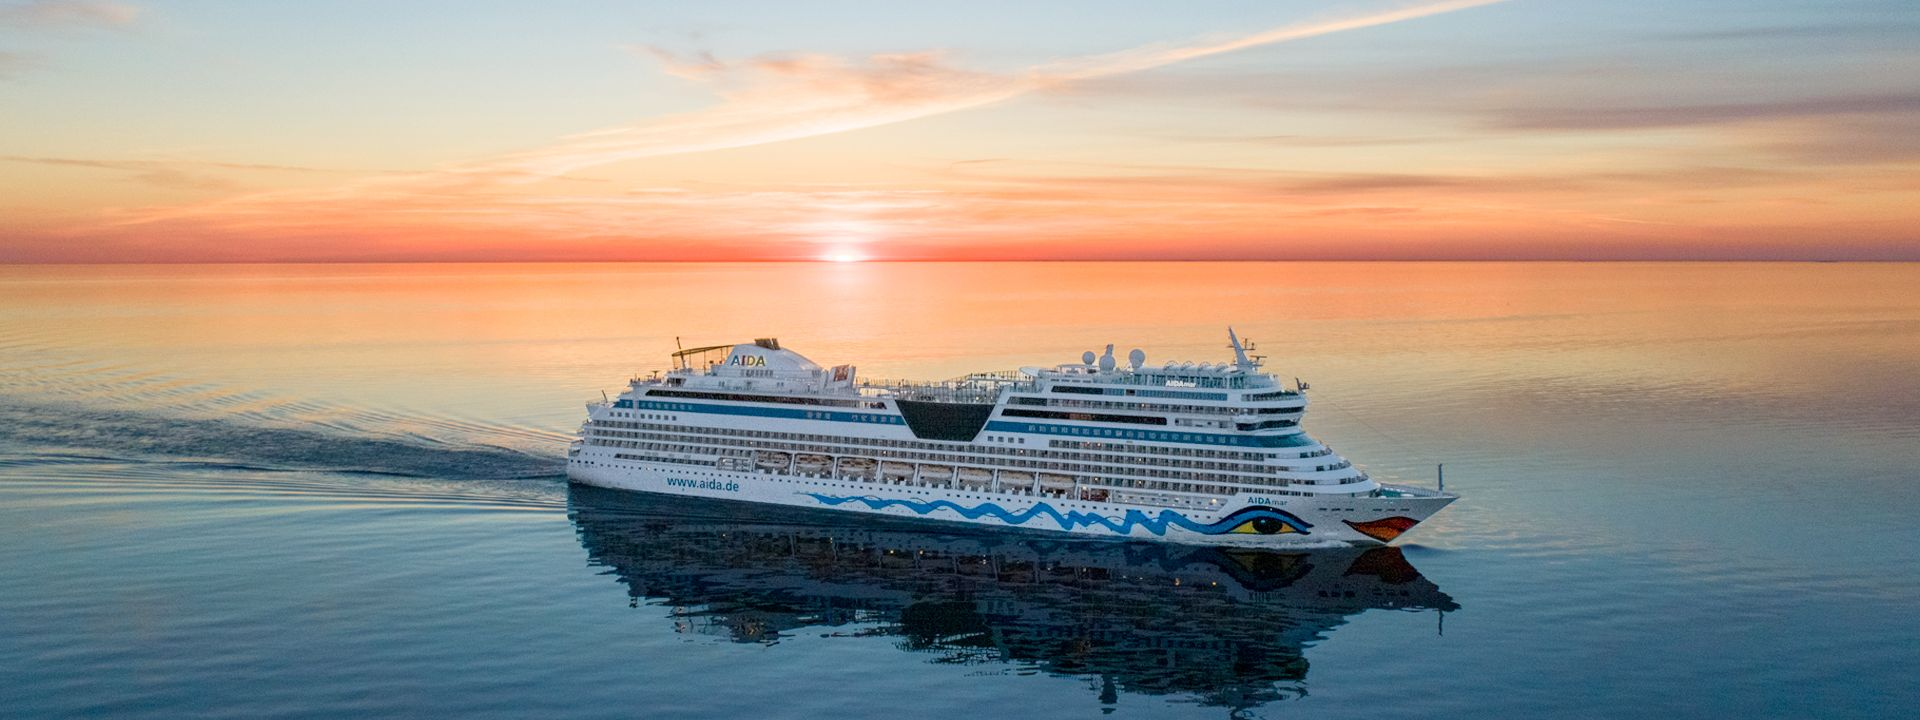 Cruising the Mediterranean by Carnival German Style